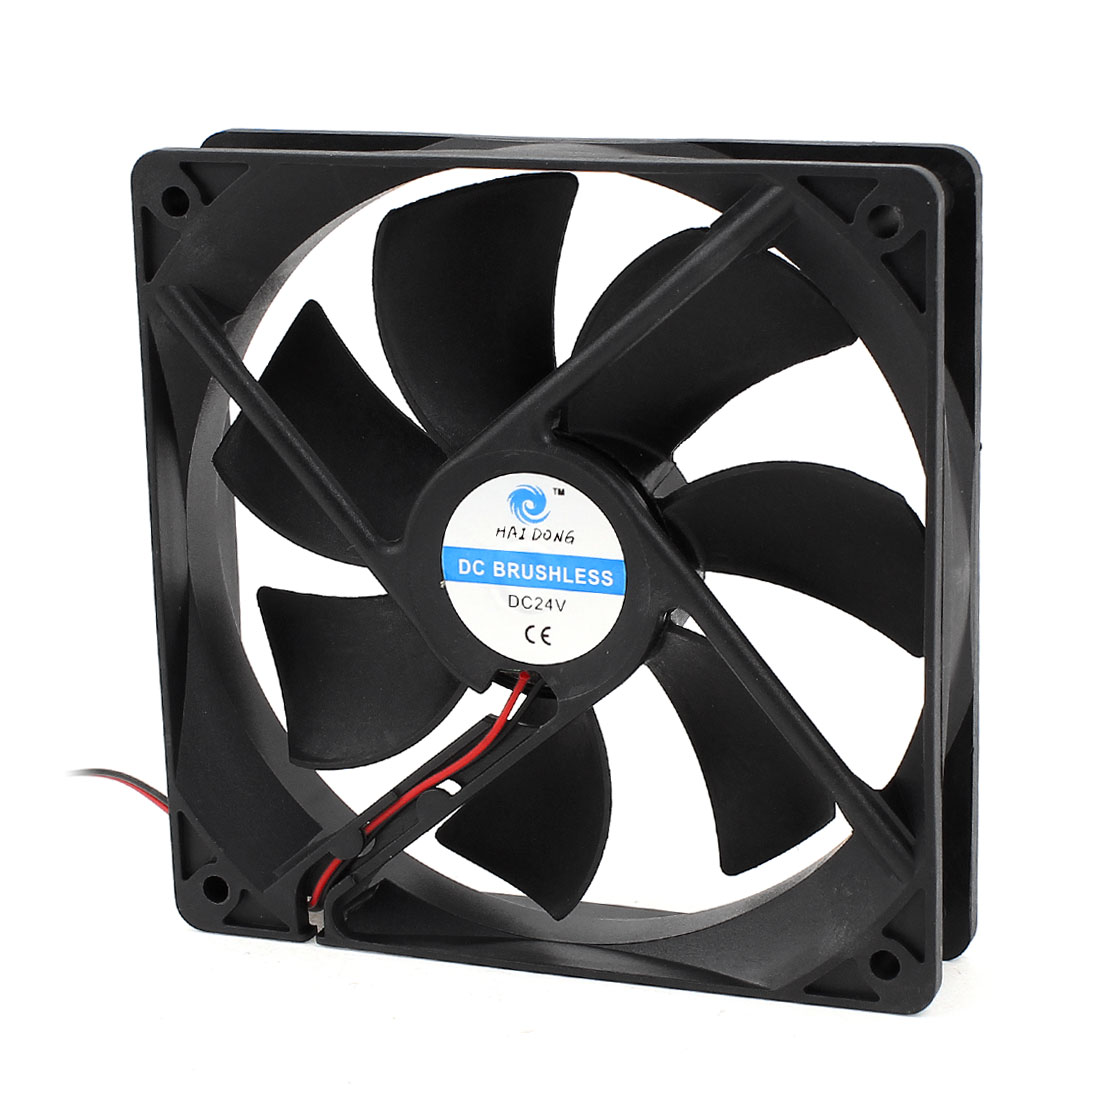 MF-D12025 120x120x25mm Brushless Cooling Fan DC 24V for Computer Case